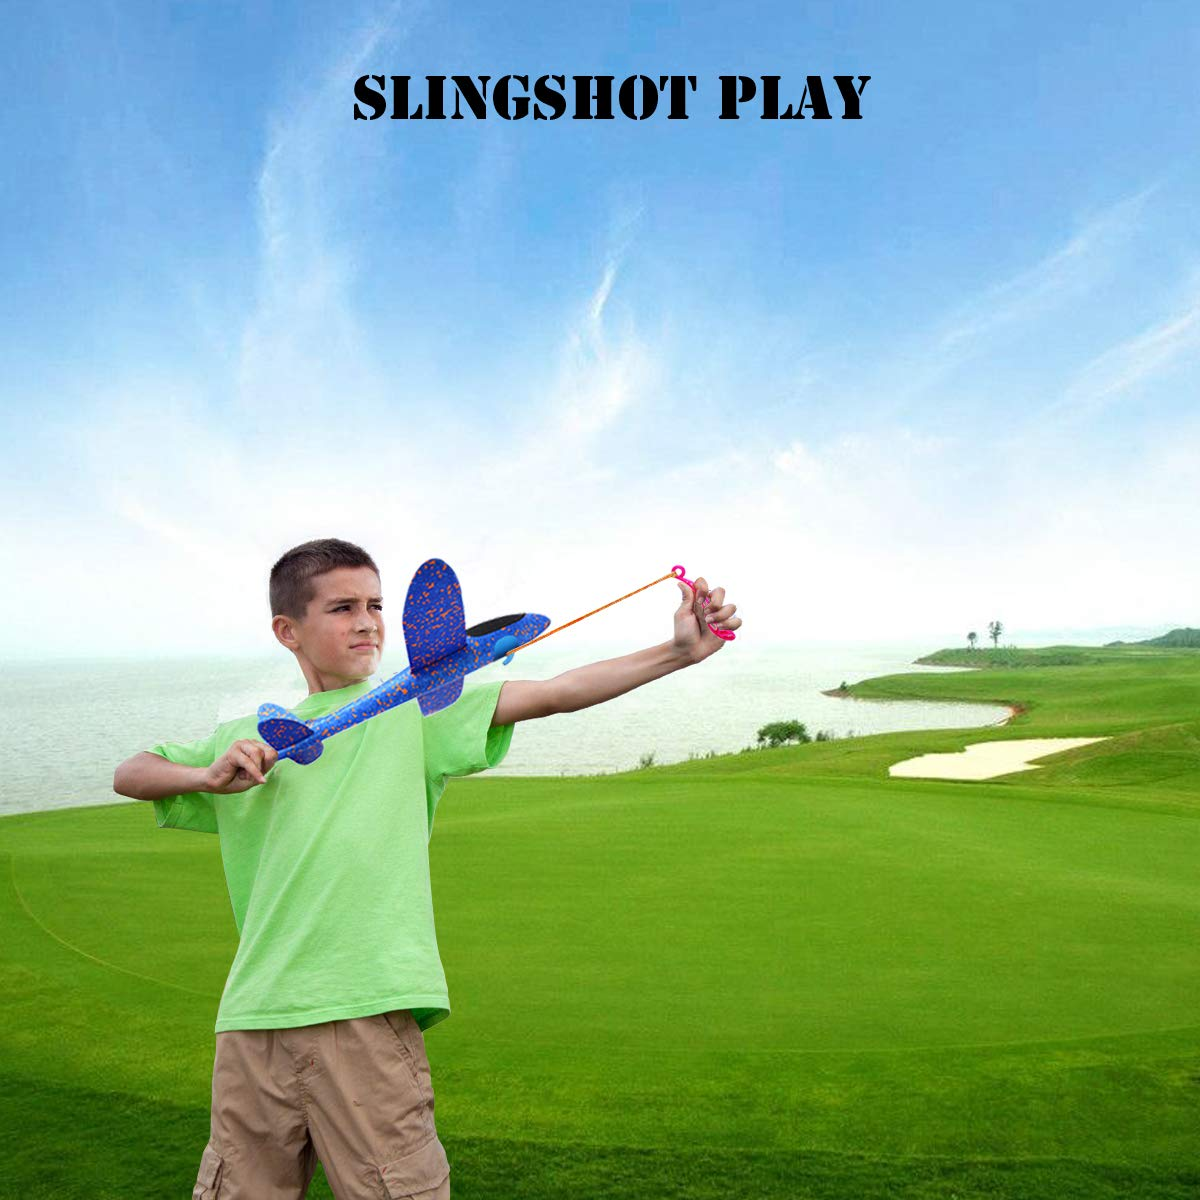 MIMIDOU 4 Pcs Catapult Slingshot Plane 2 Flight Mode Glider Airplane 2 Ways to Play Outdoor Flying Toy for Kids as Gift. by MIMIDOU (Image #7)